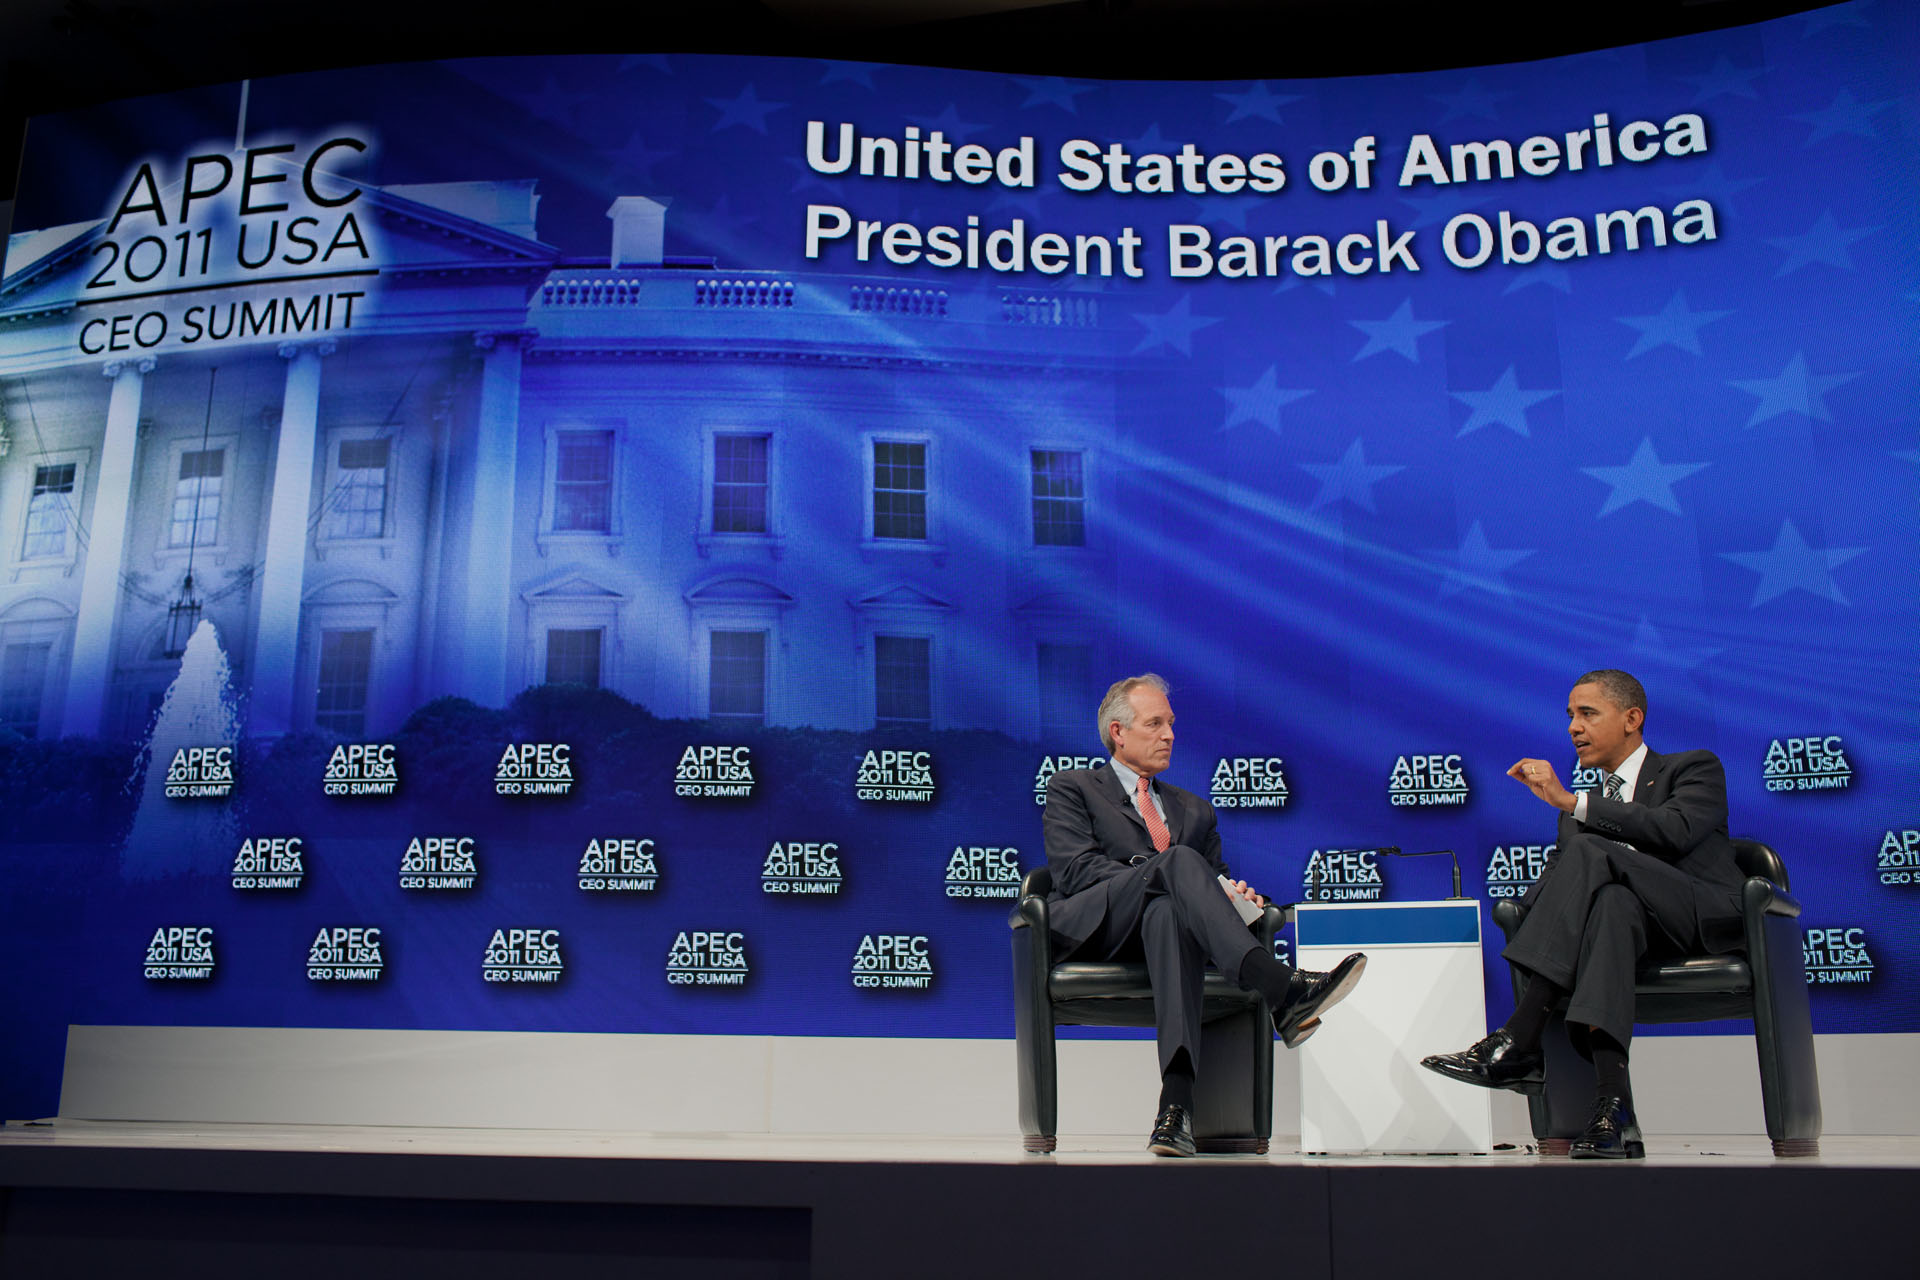 President Barack Obama answers a question at the APEC CEO business summit